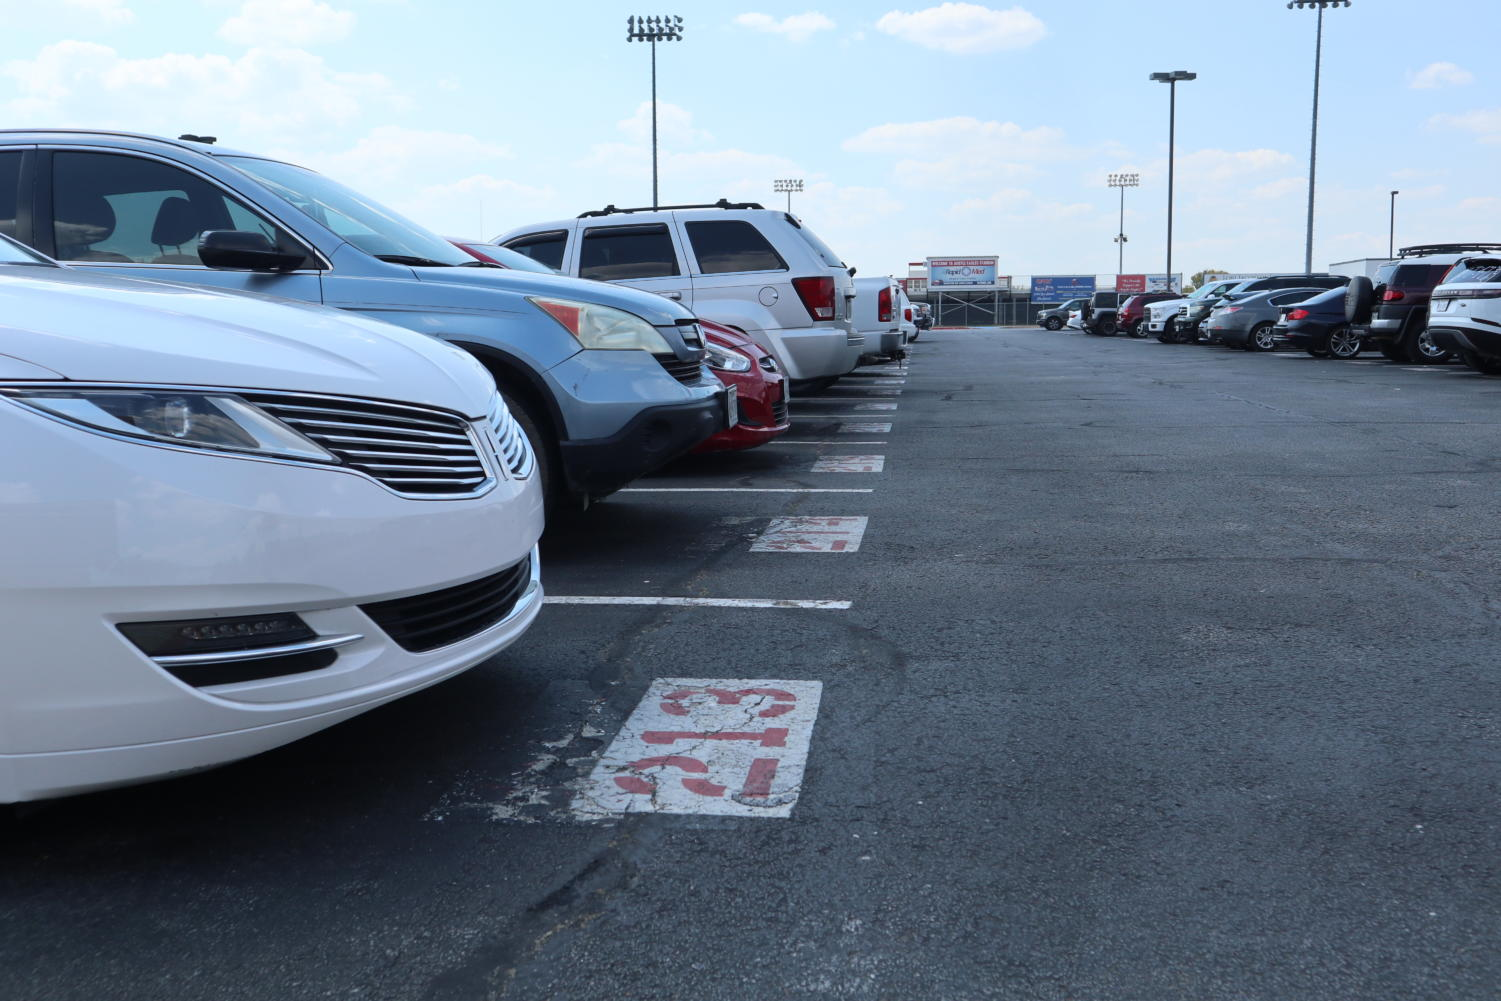 With parking being randomly assigned, many students have voiced concerns and disapproval. (Trinity Flaten / The Talon News)